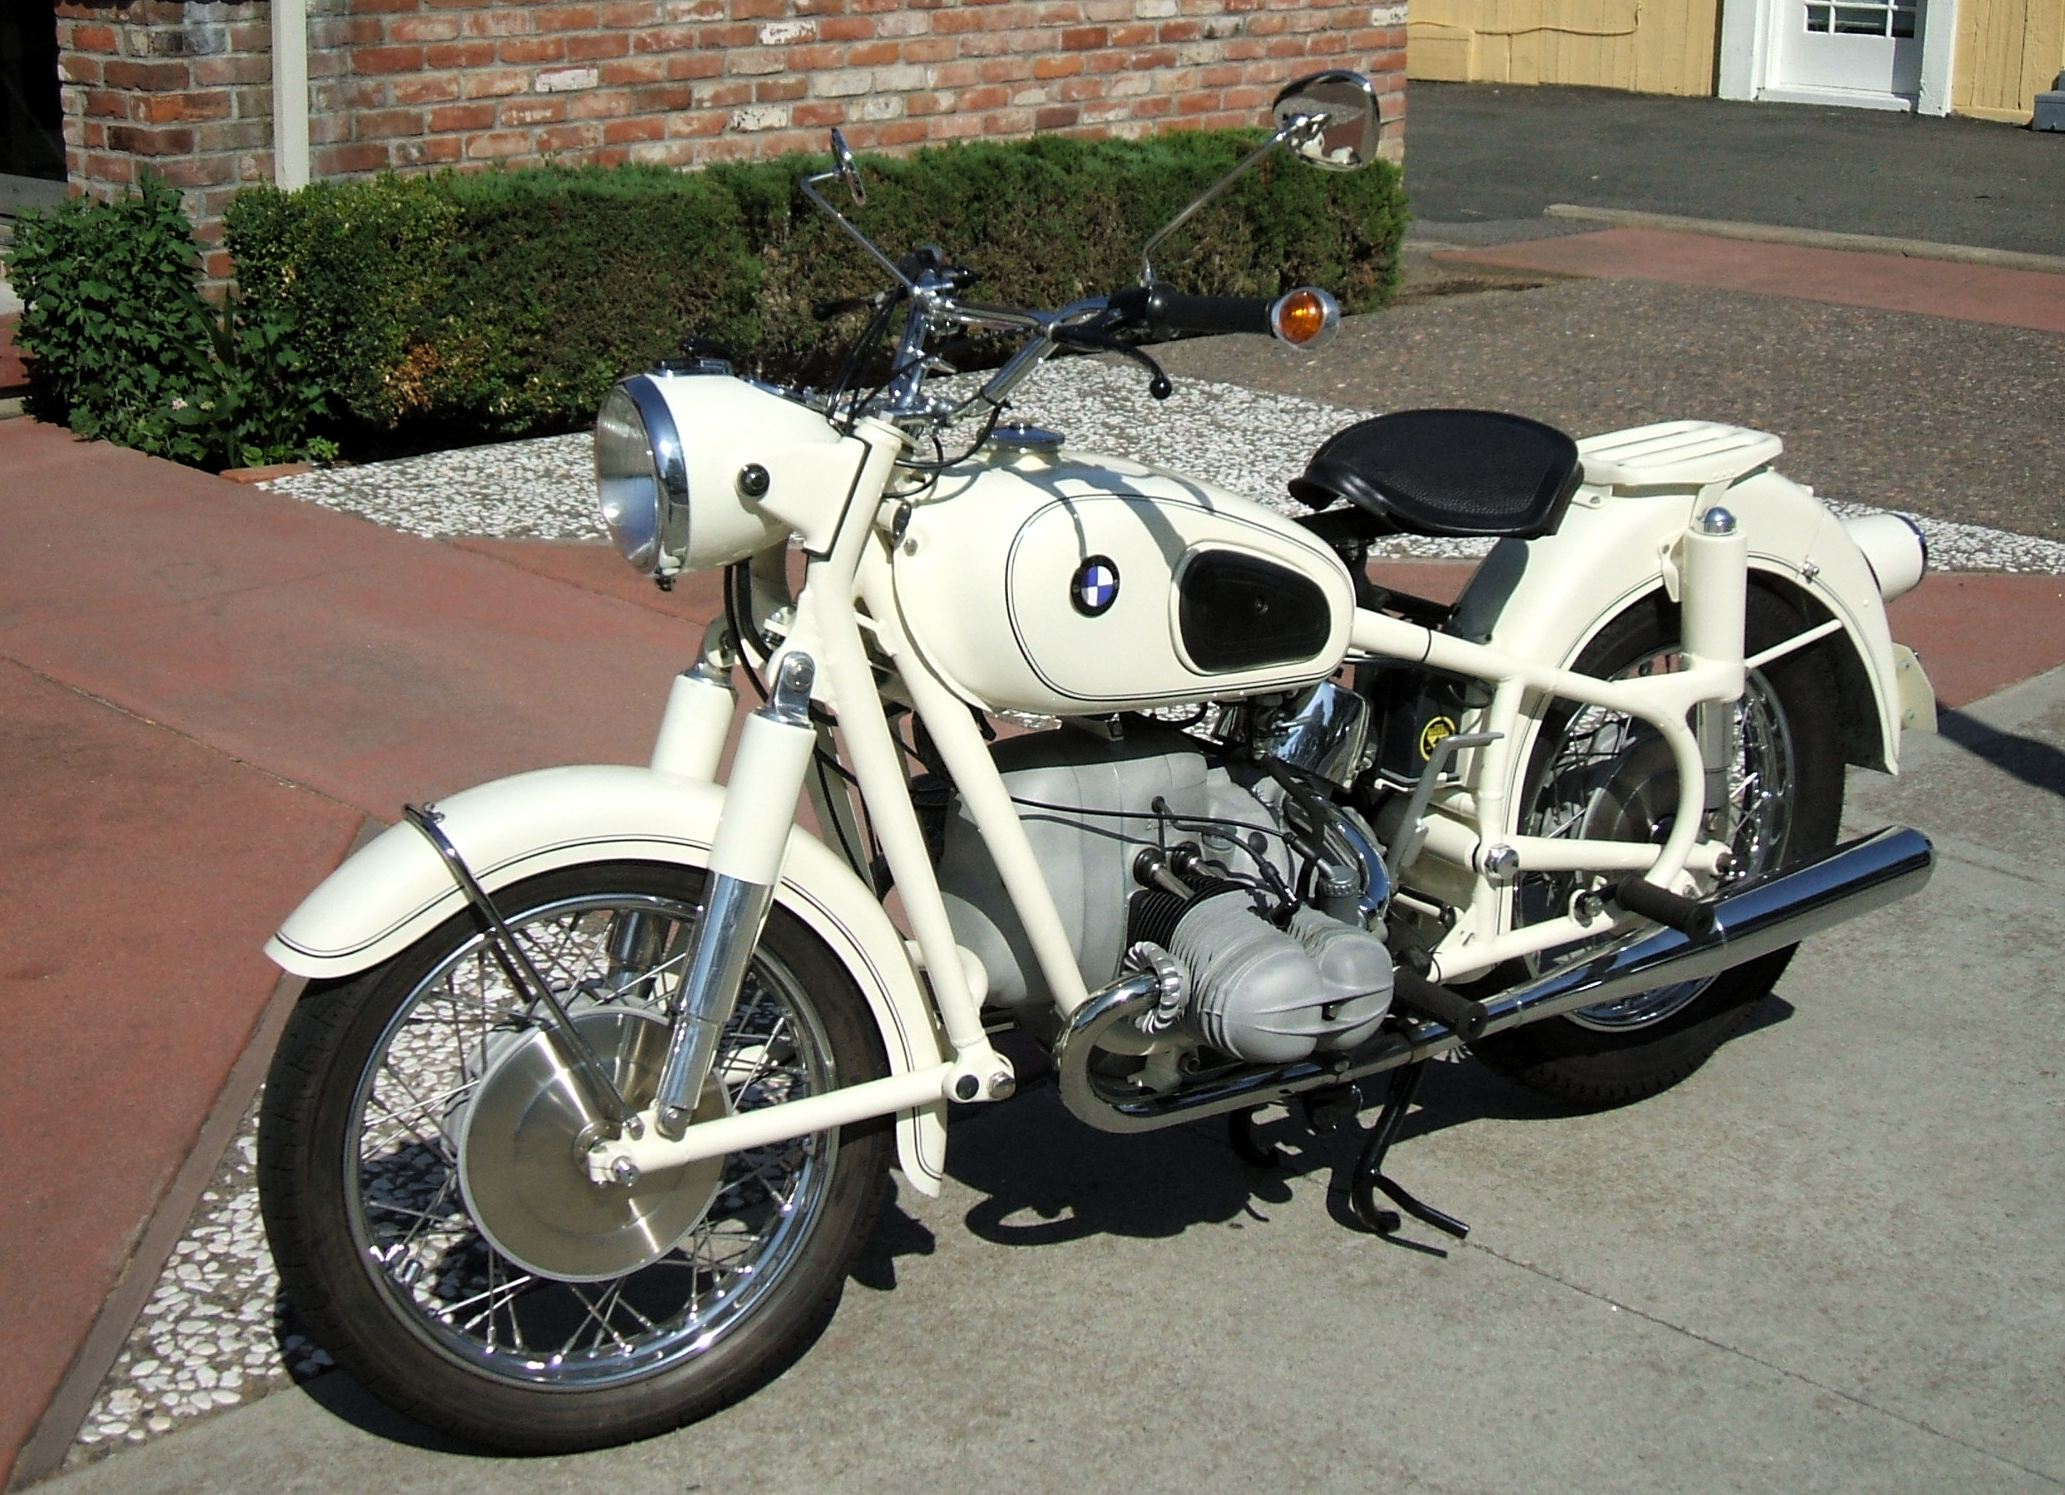 BMW Motorcycle – Lincoln Ct.